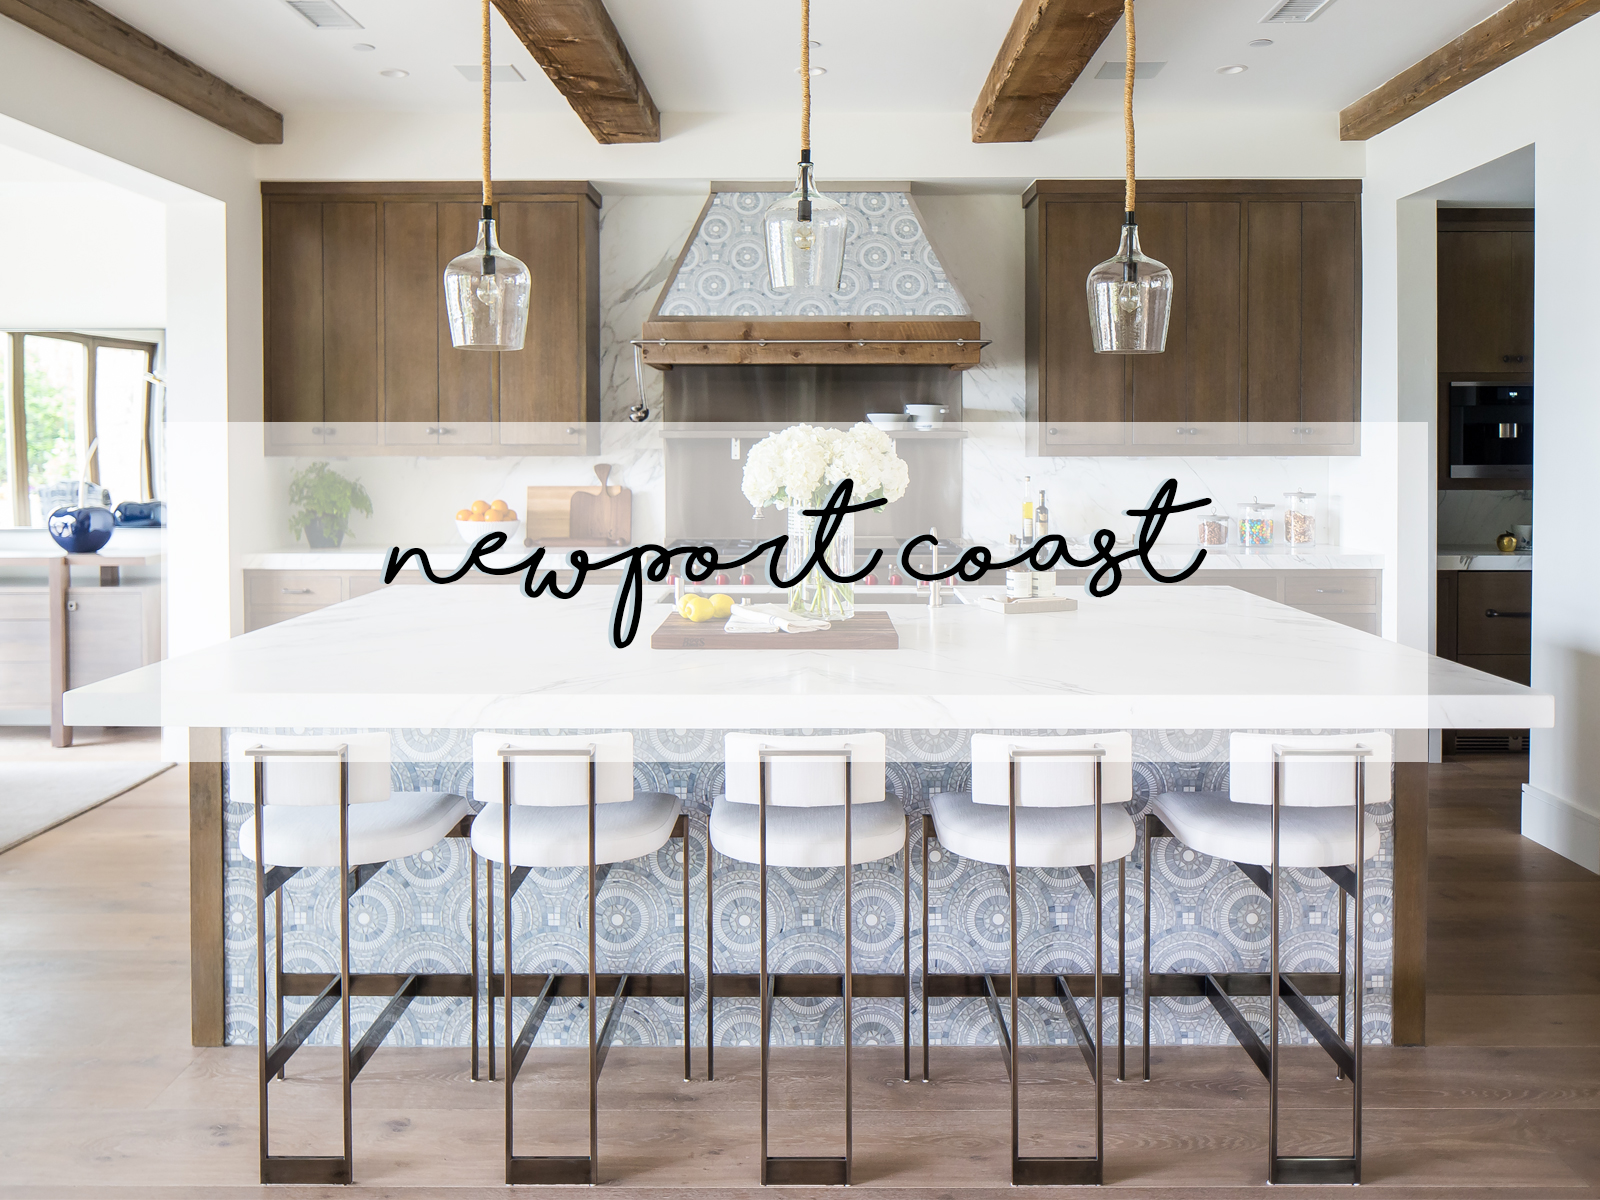 blackband_design_project_newport_coast_album_cover